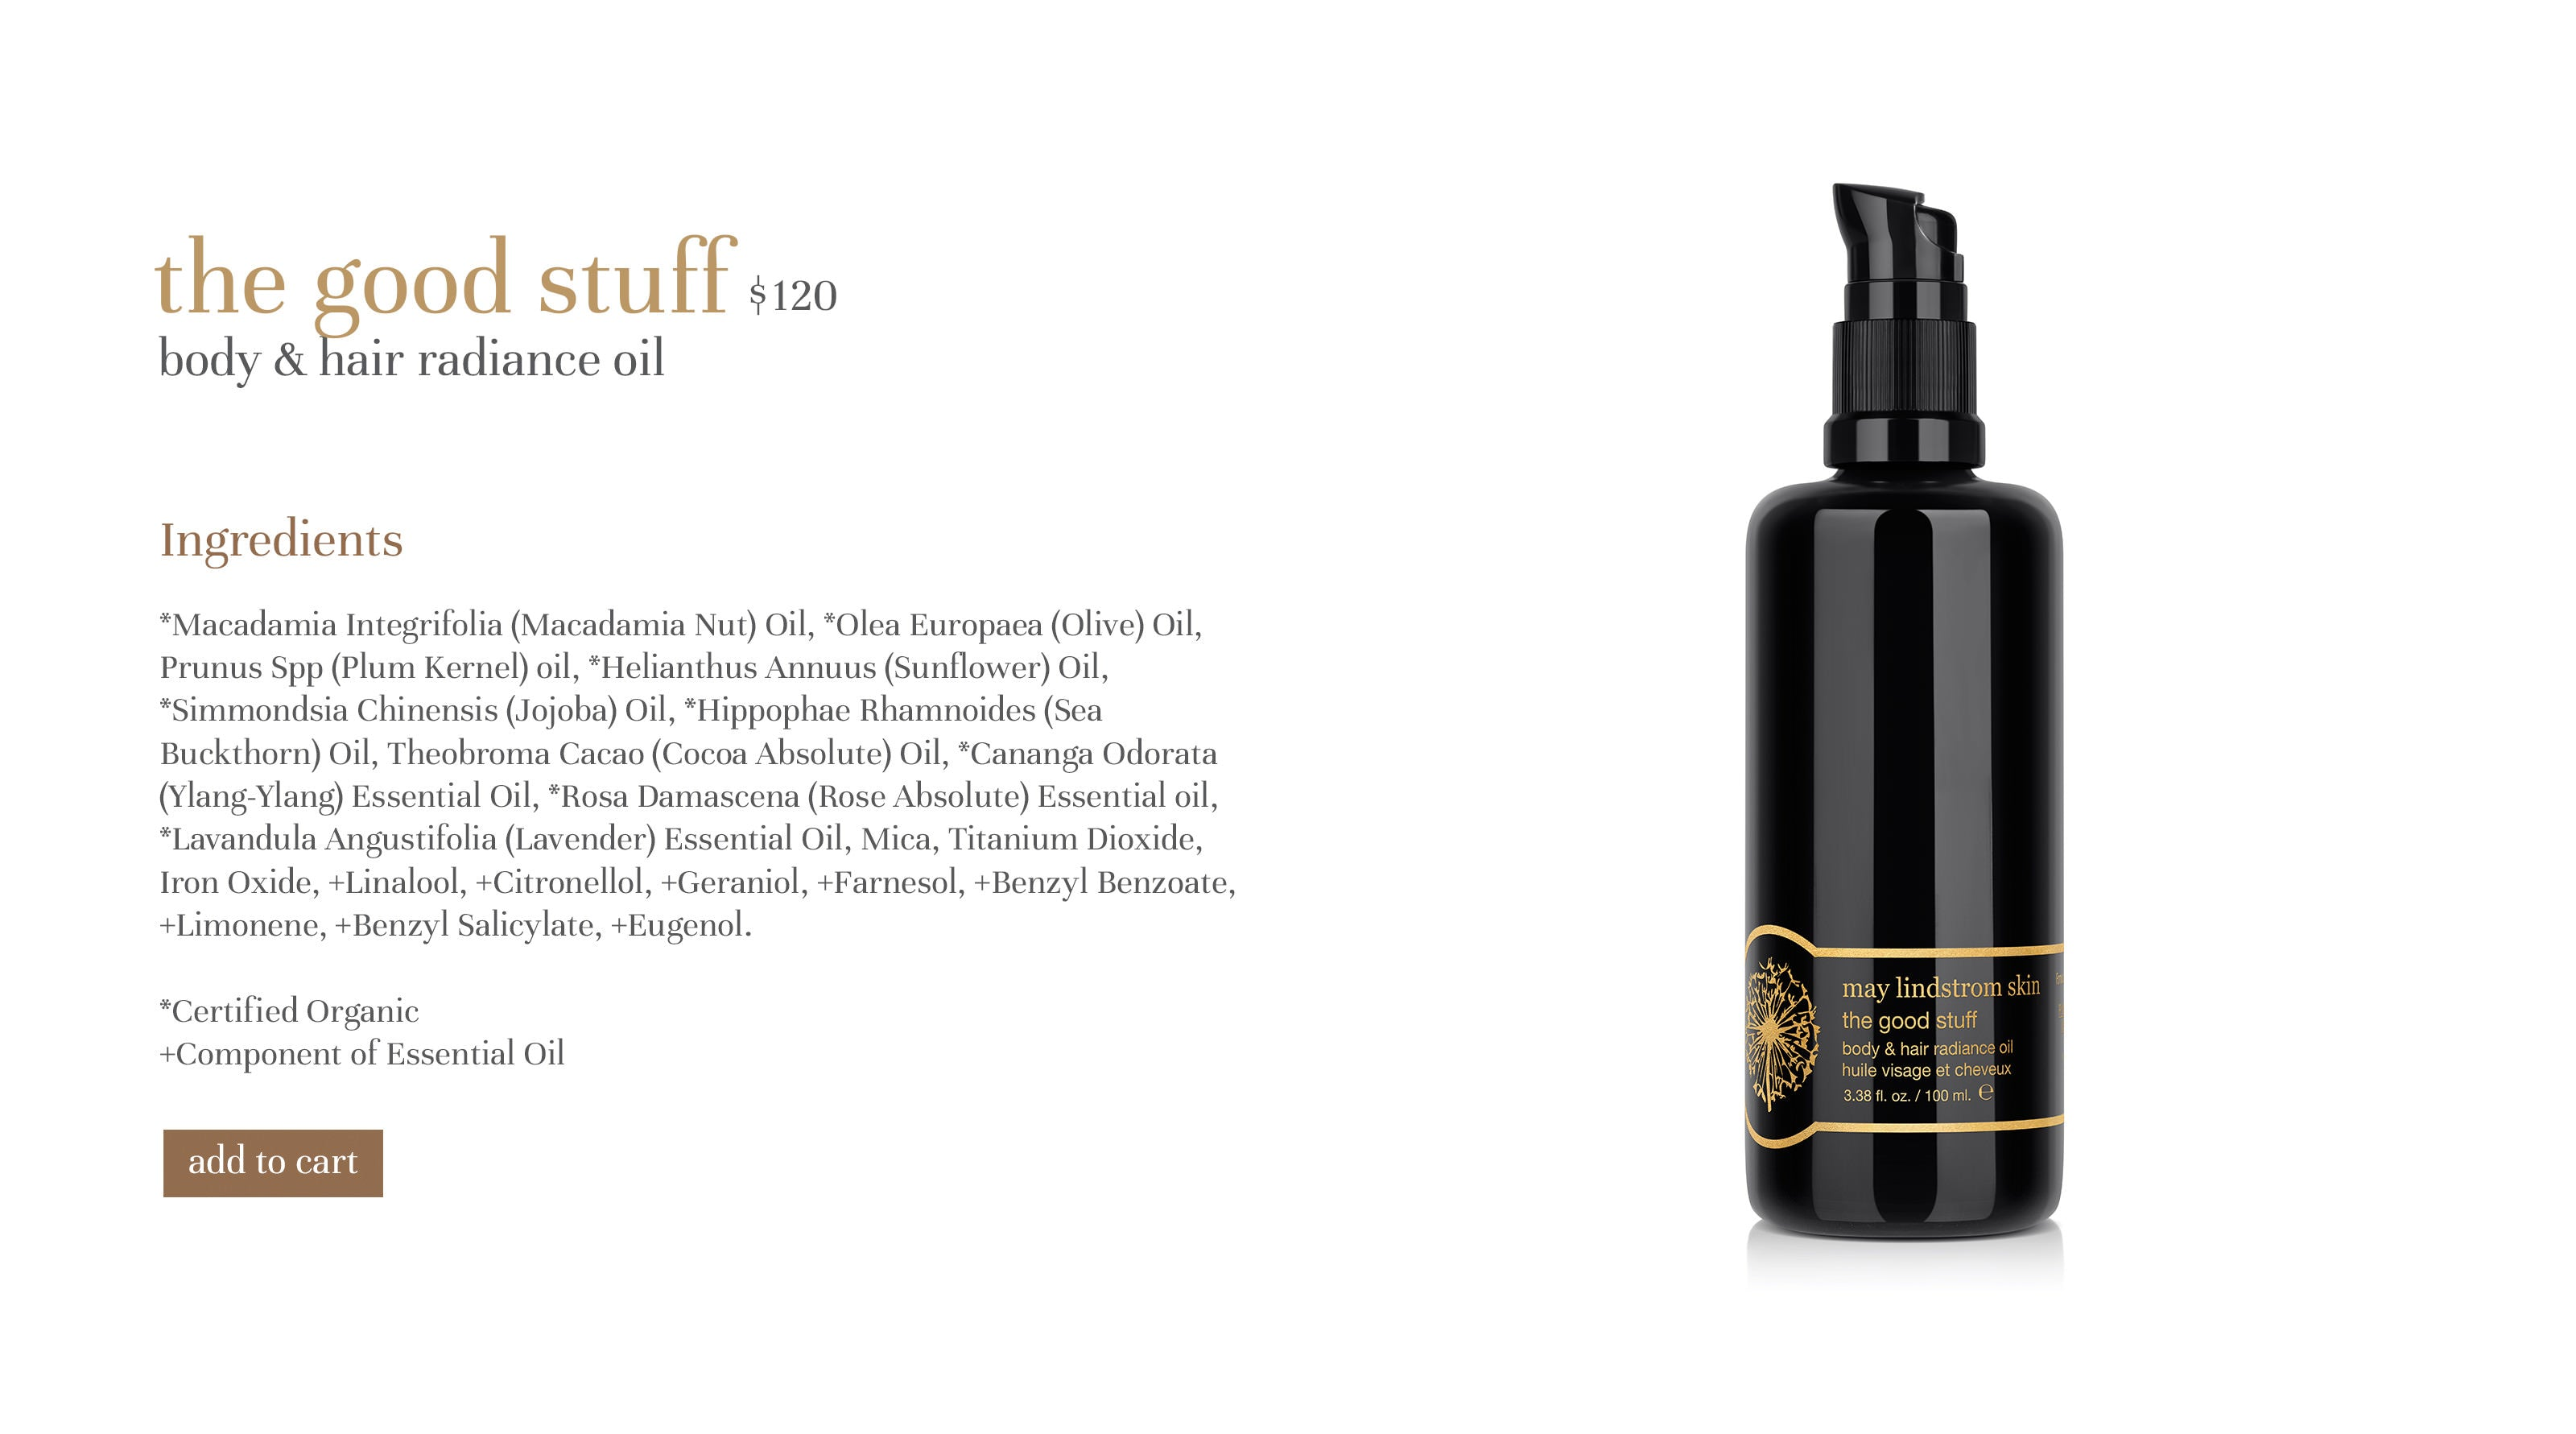 the good stuff $110 body & hair radiance oil Ingredients *Macadamia Integrifolia (Macadamia Nut) Oil, *Olea Europaea (Olive) Oil, Prunus Spp (Plum Kernel) oil, *Helianthus Annuus (Sunflower) Oil, *Simmondsia Chinensis (Jojoba) Oil, *Hippophae Rhamnoides (Sea Buckthorn) Oil, Theobroma Cacao (Cocoa Absolute) Oil, *Cananga Odorata (Ylang-Ylang) Essential Oil, *Rosa Damascena (Rose Absolute) Essential oil, *Lavandula Angustifolia (Lavender) Essential Oil, Mica, Titanium Dioxide, Iron Oxide, +Linalool, +Citronellol, +Geraniol, +Farnesol, +Benzyl Benzoate, +Limonene, +Benzyl Salicylate, +Eugenol. *Certified Organic +Component of Essential Oil